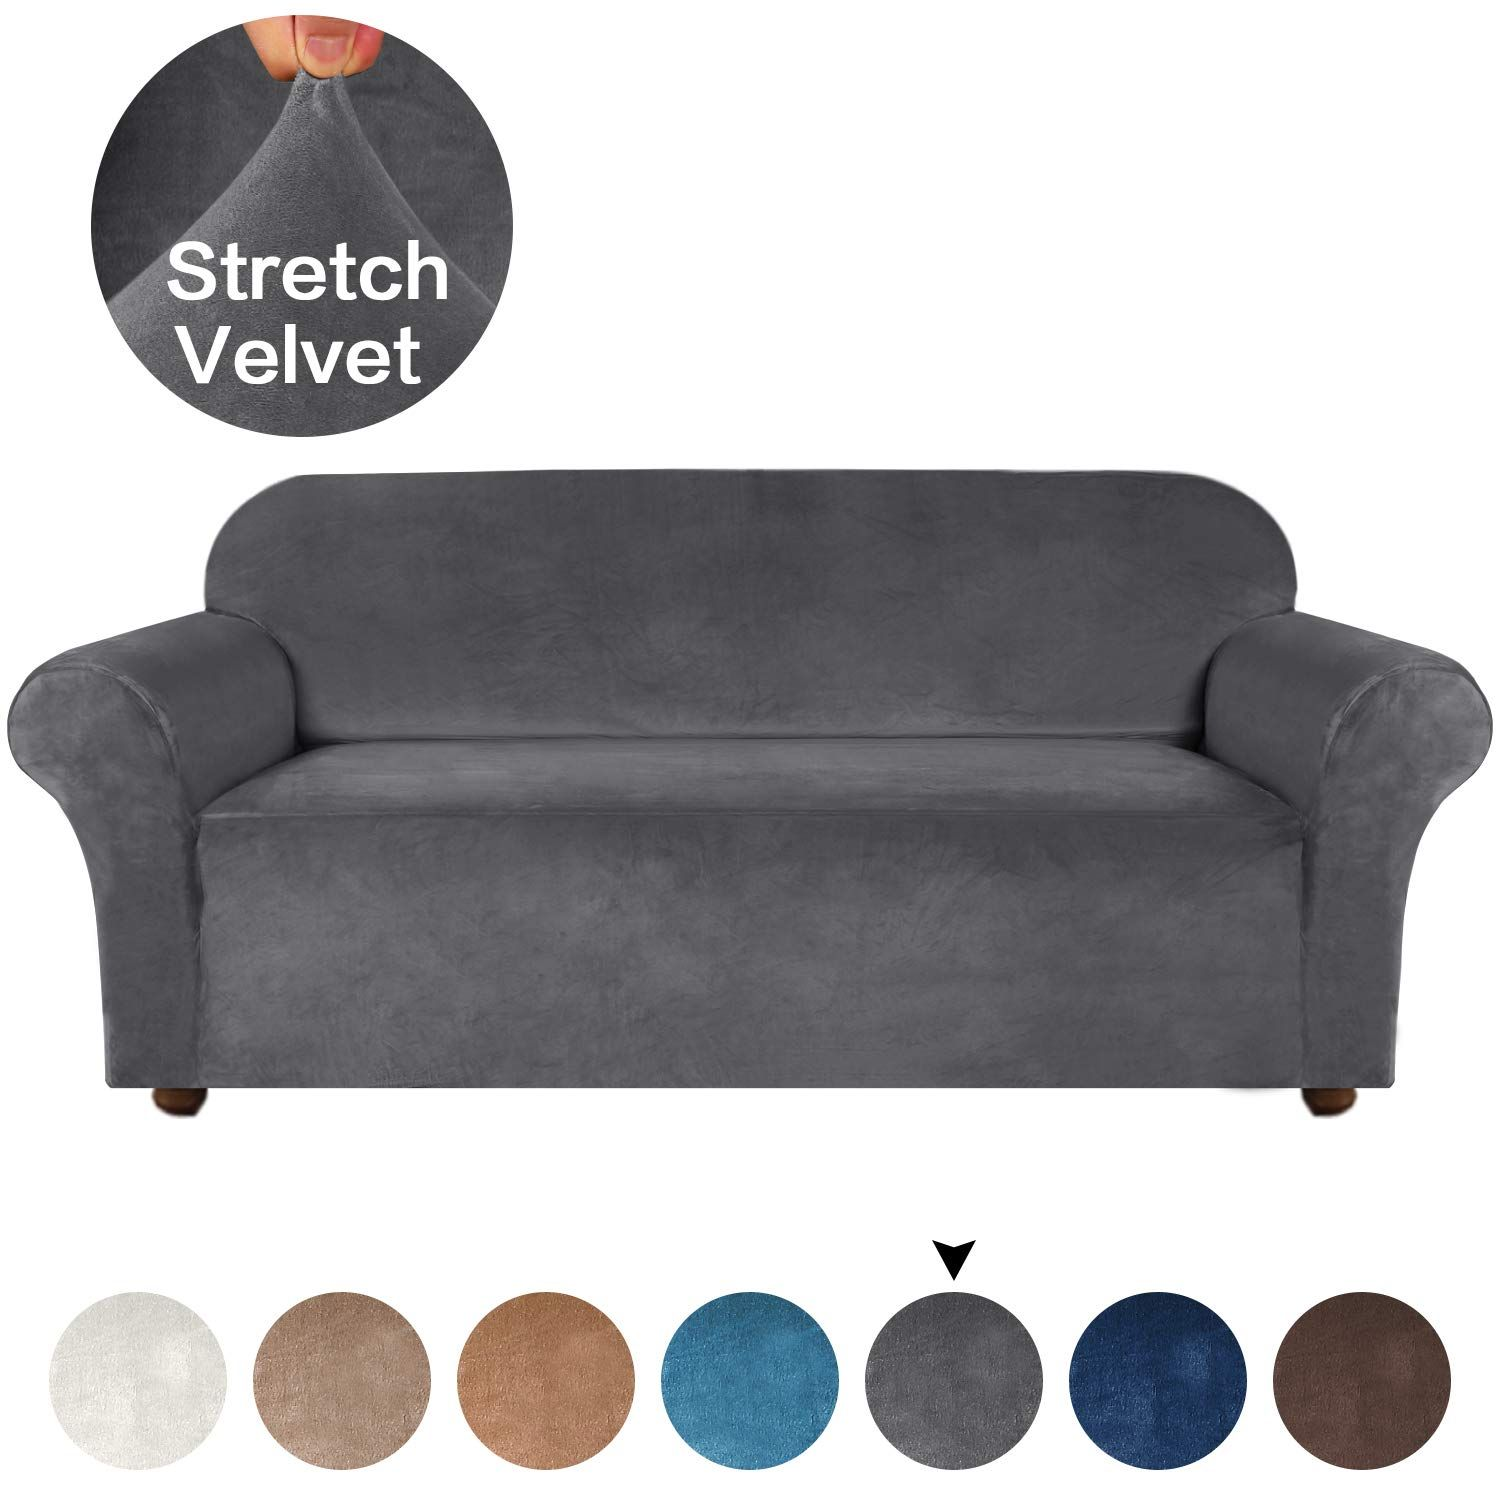 Amazon Com Velvet Plush Couch Cover For Sofa Slipcover Stylish Luxury Furniture Covers 1 Piece Furniture Protector Wash In 2020 Slipcovered Sofa Plush Sofa Slipcovers